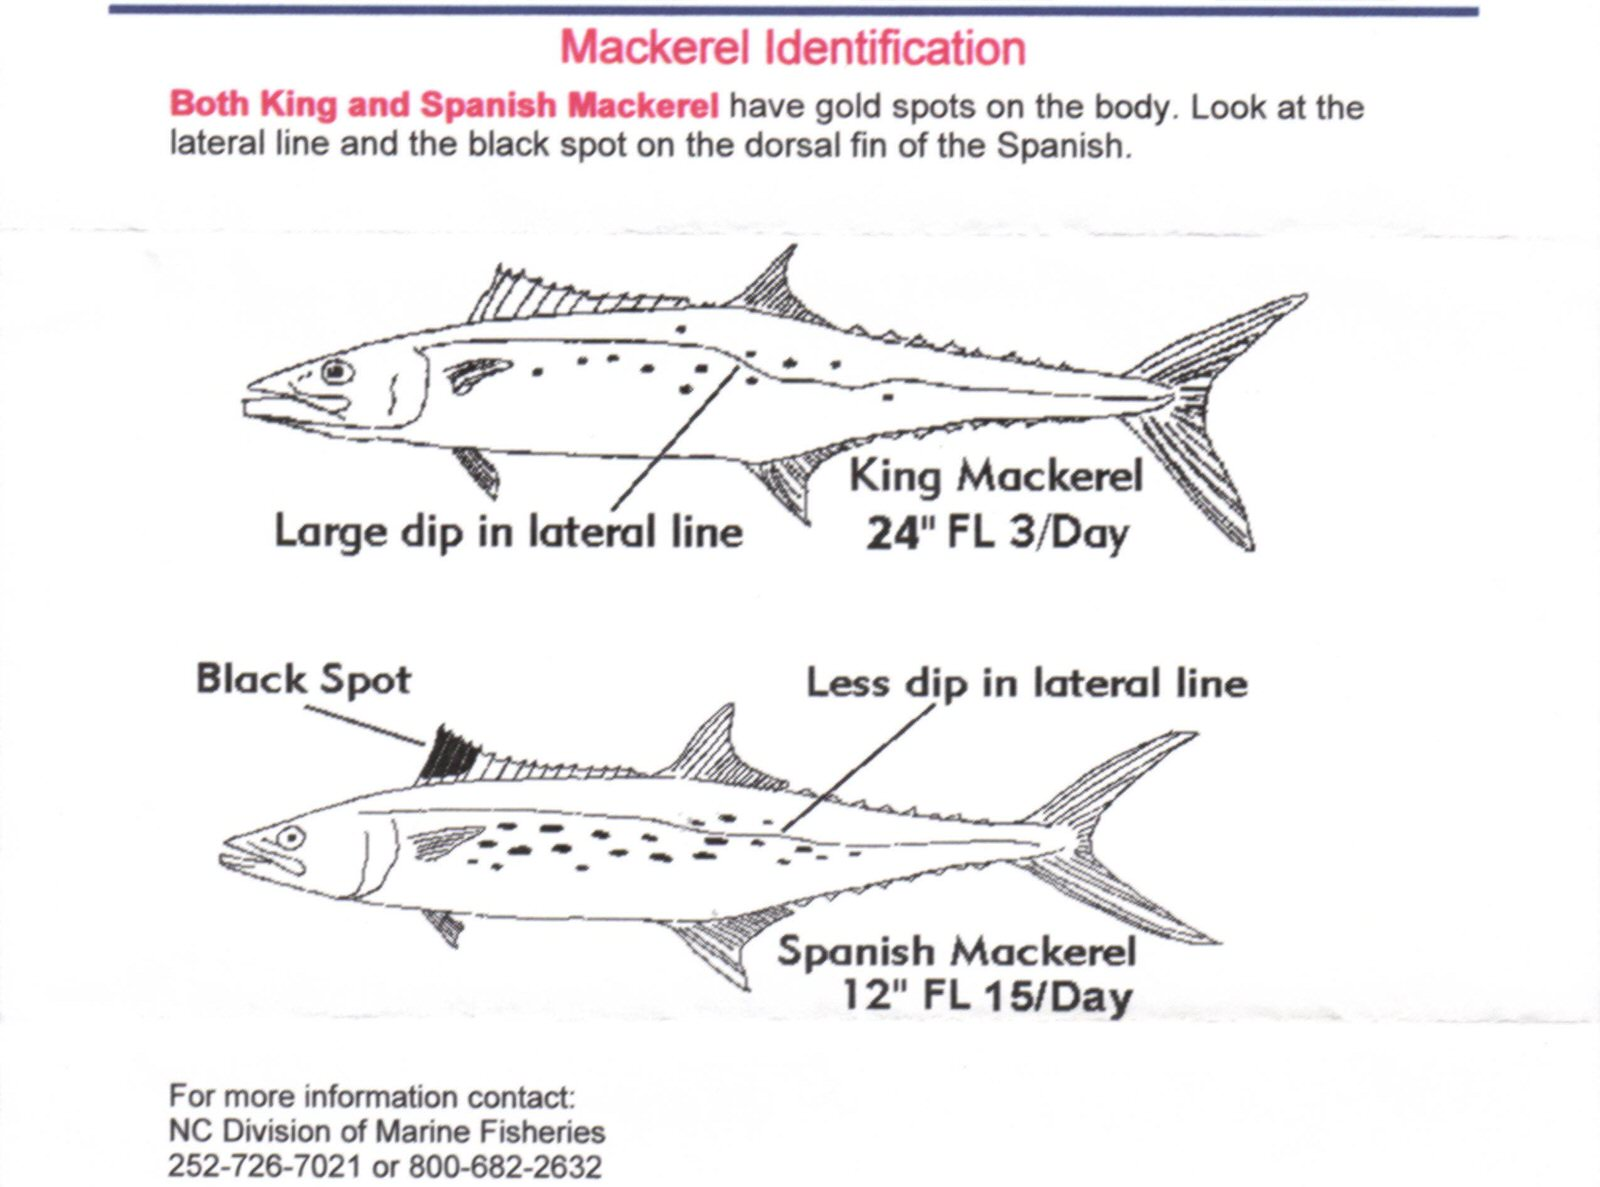 mackerel are considered oily fish and some people consider them strong  flavored  spanish mackerel are one of the lighter flavored fish in the  mackerel